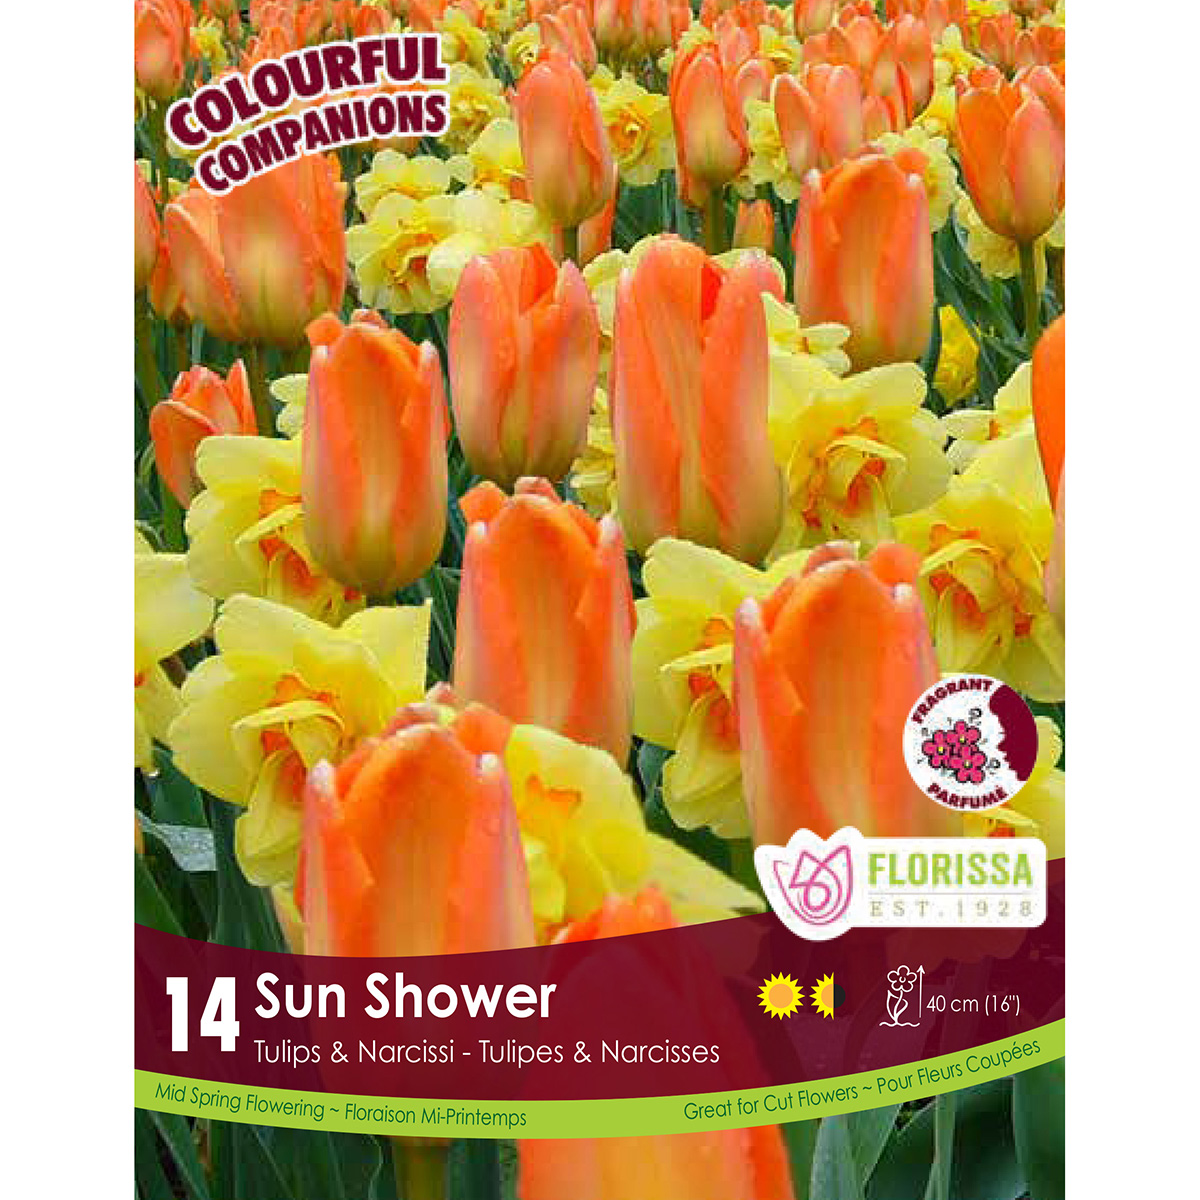 Colourful Companions 'Sun Shower' Bulbs